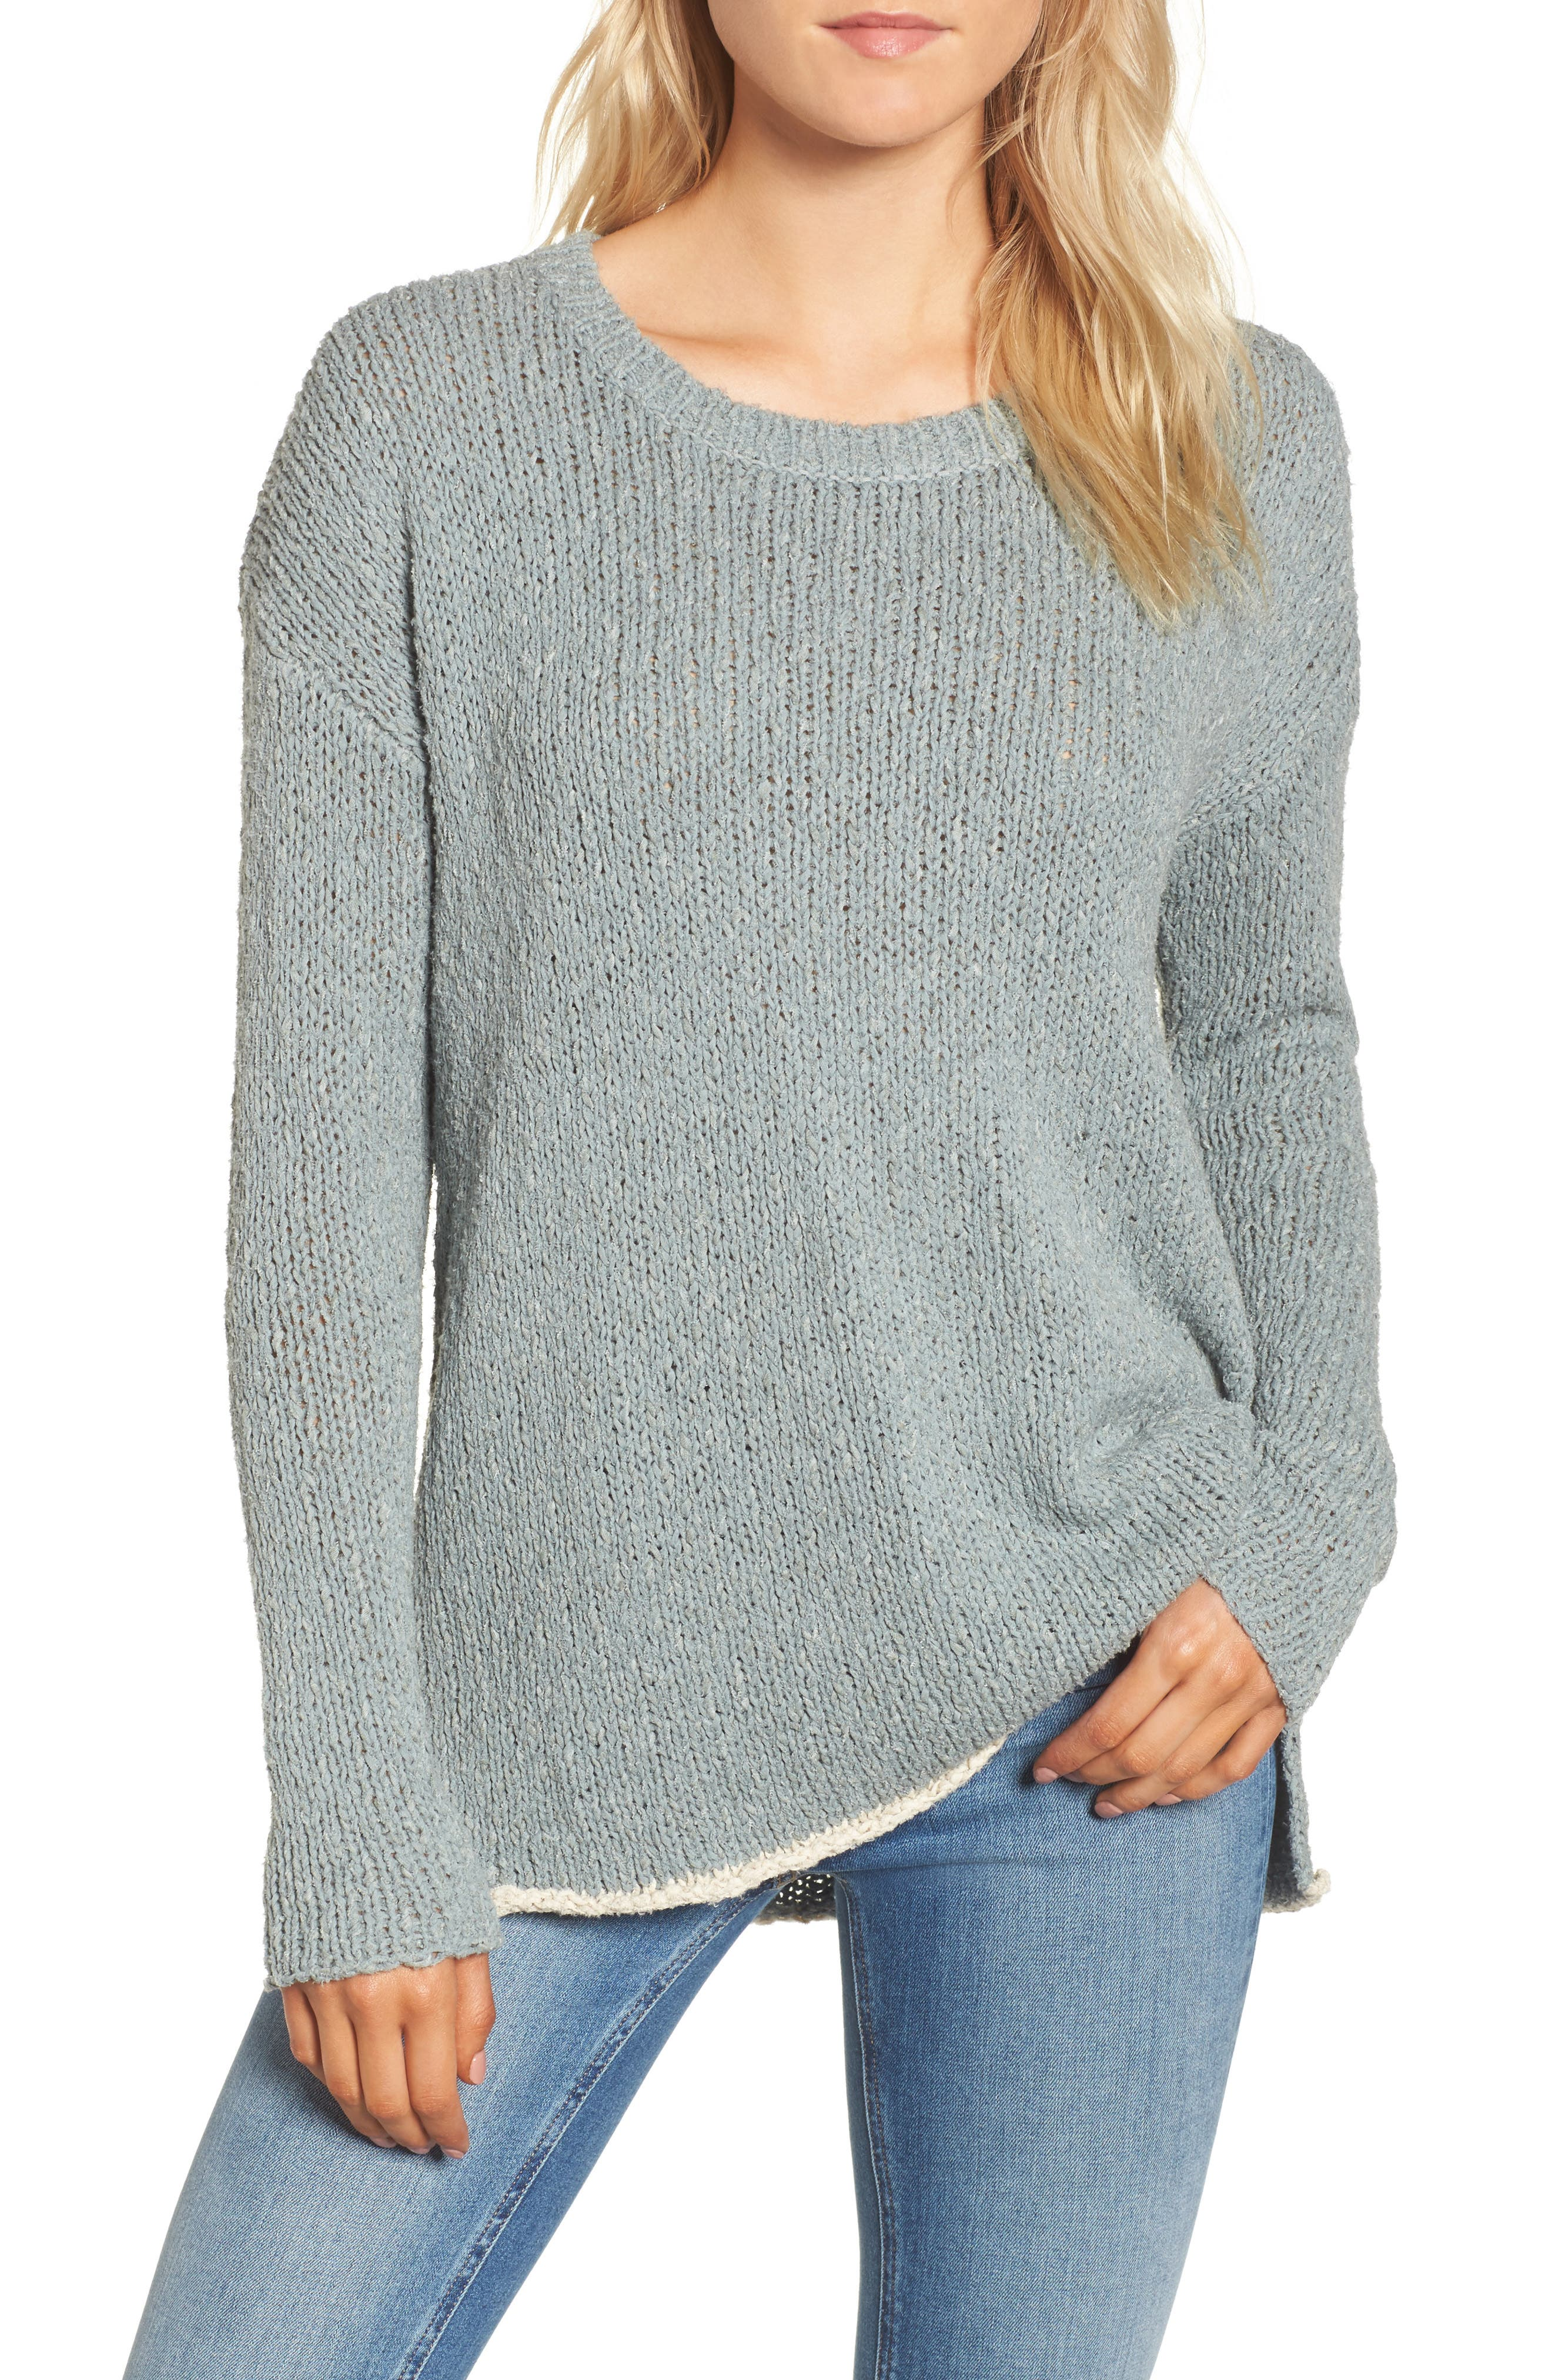 Alternate Image 1 Selected - James Perse Oversize Sweater